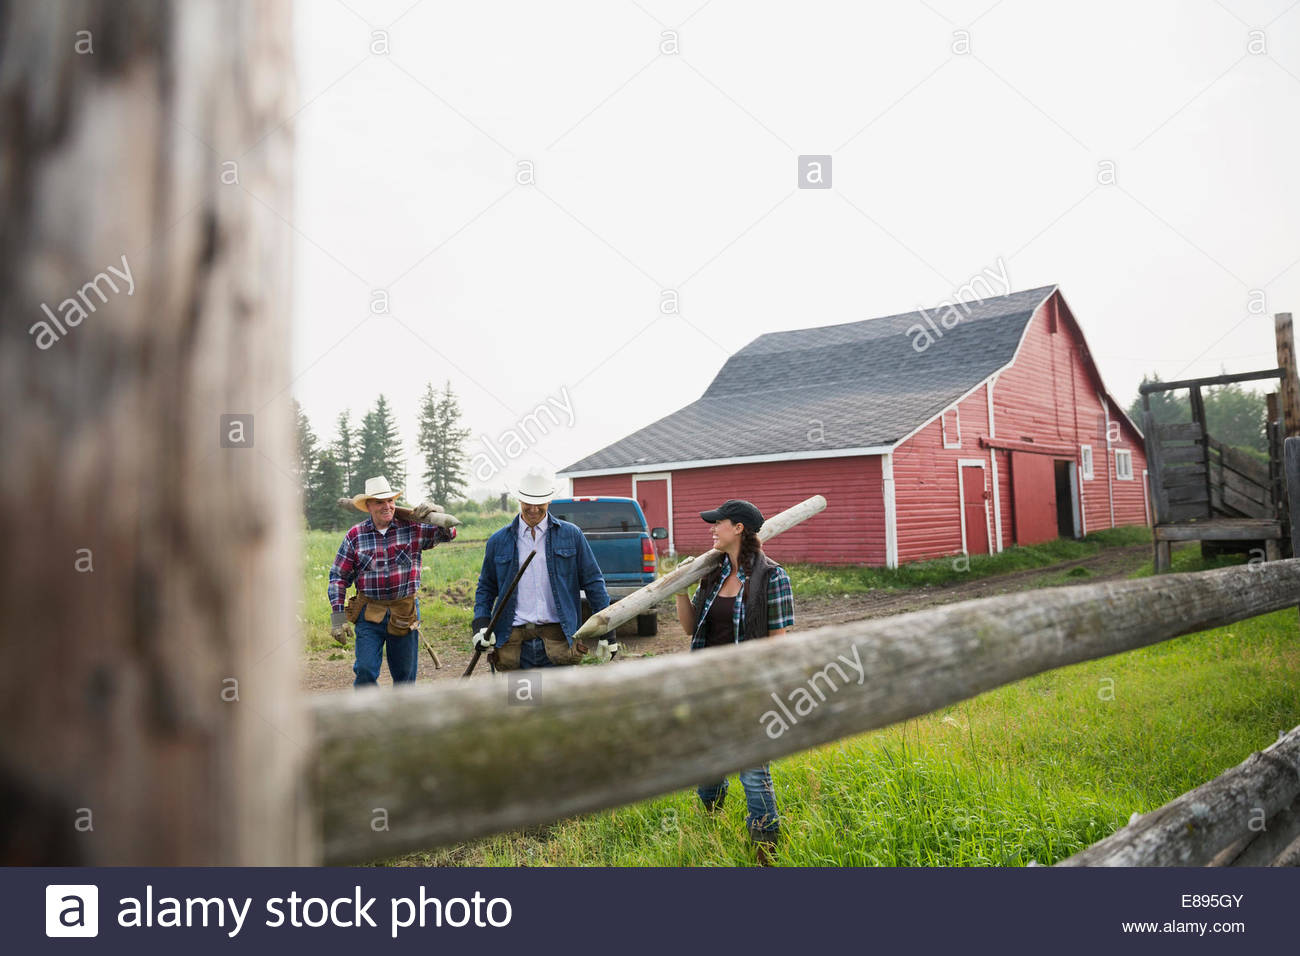 Ranchers carrying fence posts in pasture - Stock Image